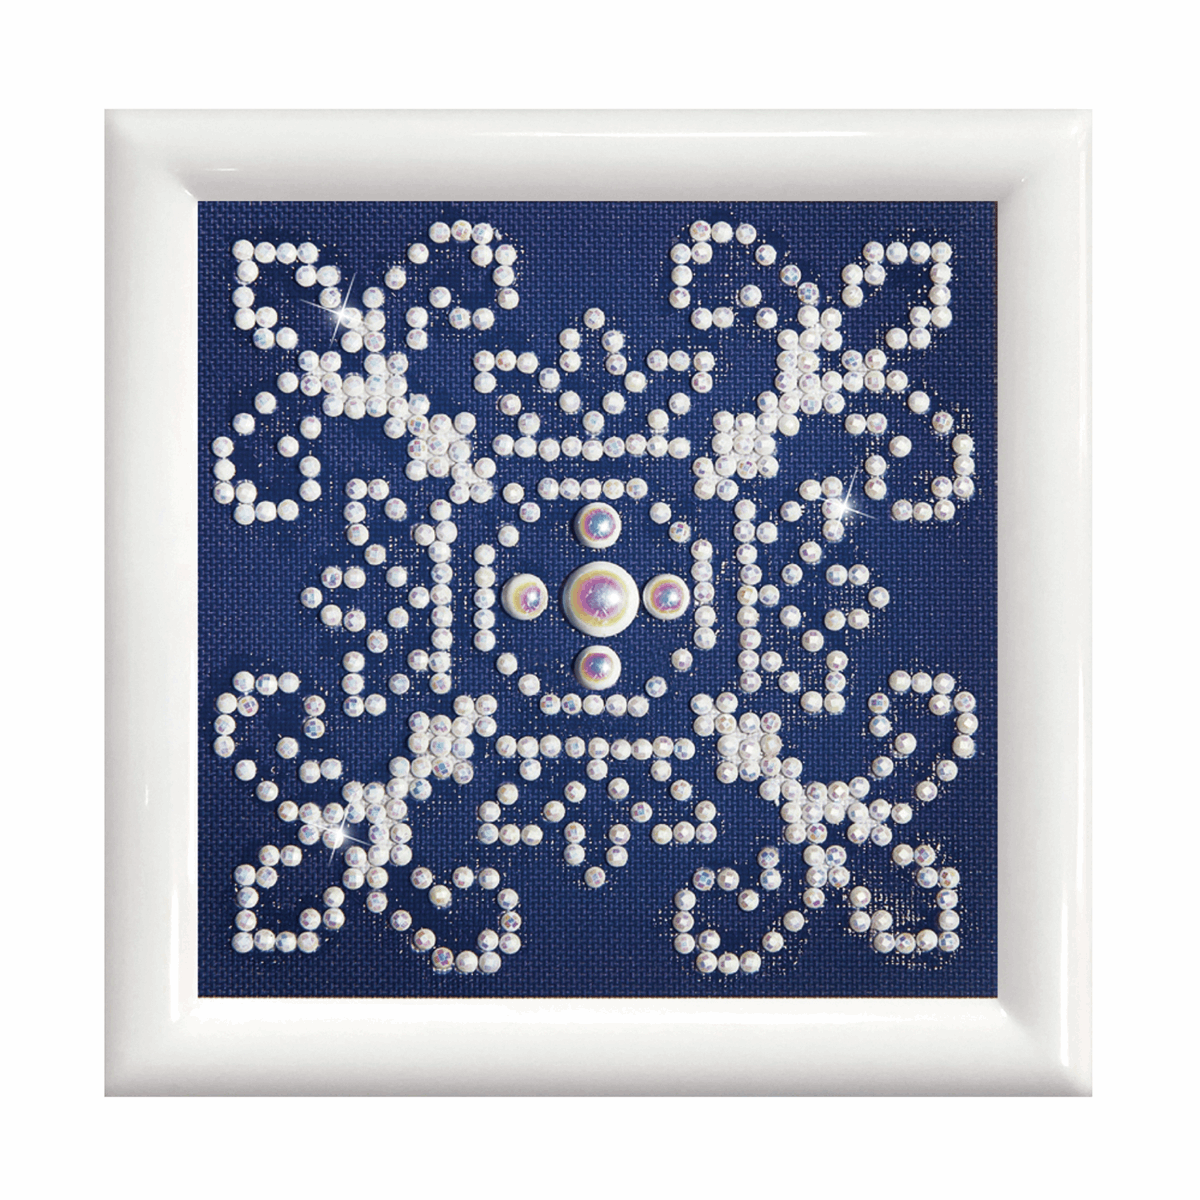 Picture of Diamond Painting Kit: White on Blue: with Frame